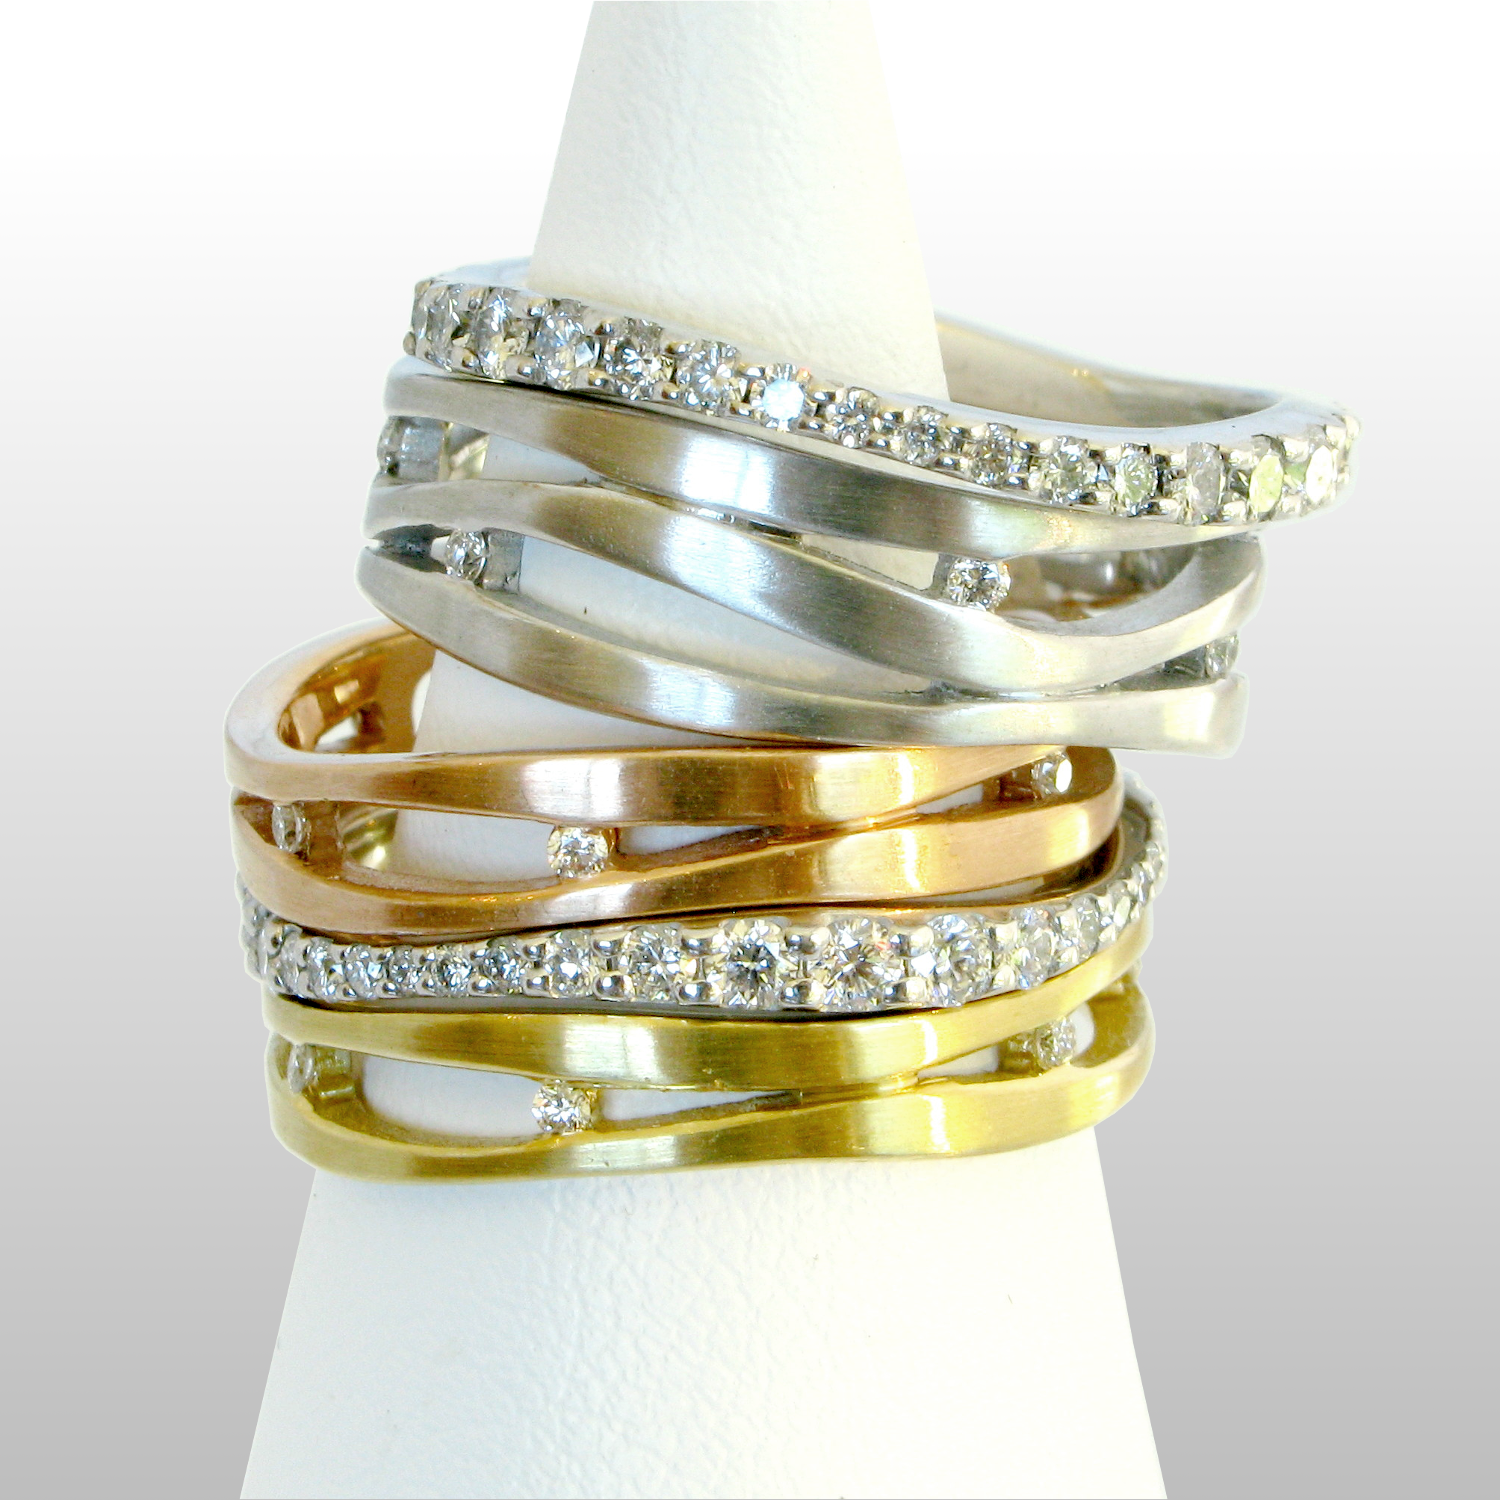 Stacking wedding rings 'Lamello' with diamonds in 18k yellow, white and rose gold or platinum by Pratima Design Fine Art Jewelry